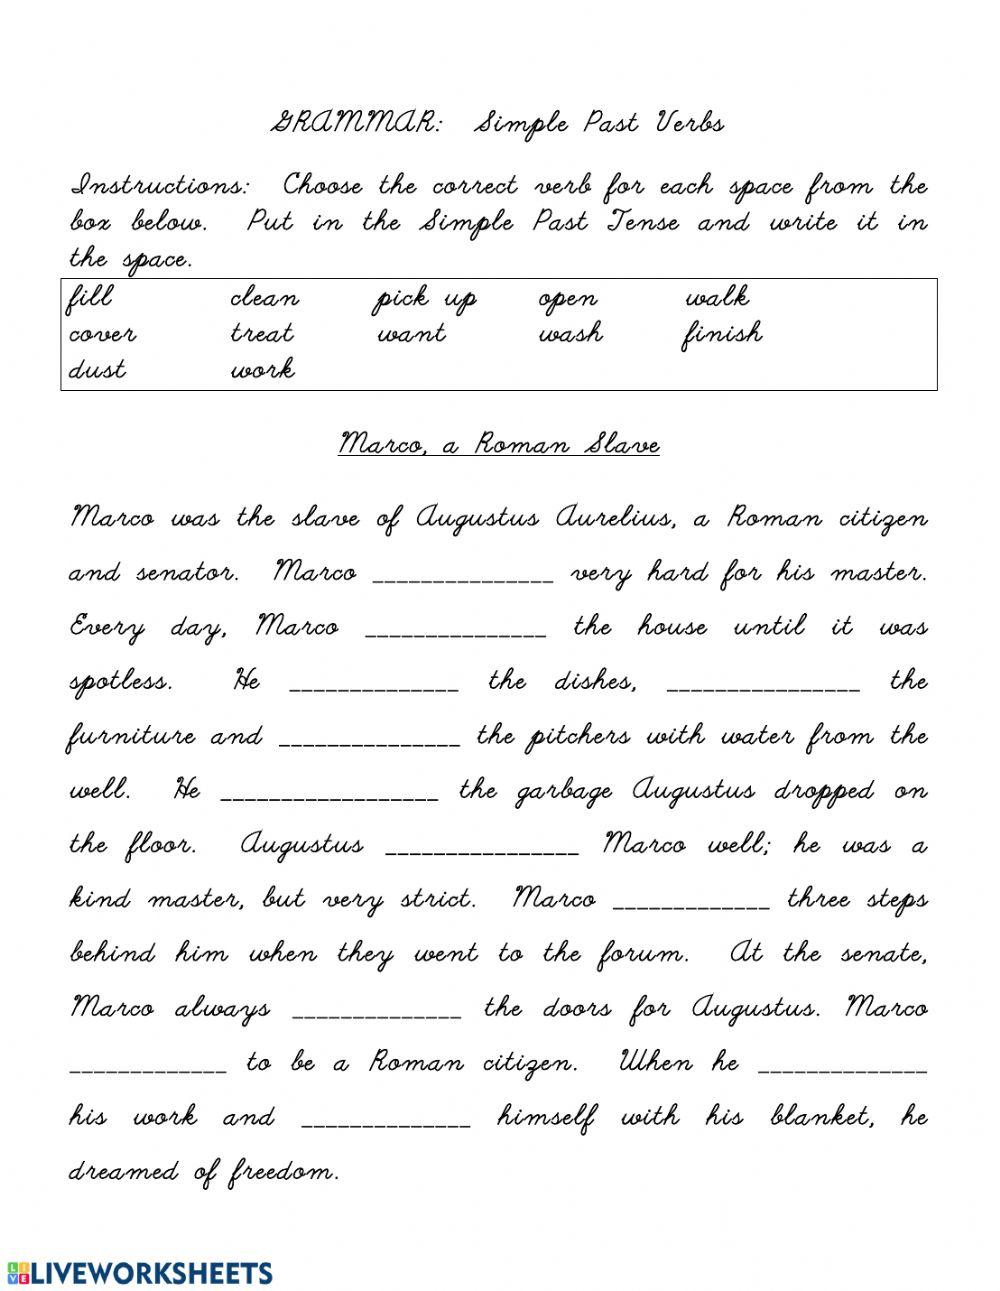 Simple Past Regular Verbs Fill In The Blank Stories Worksheet